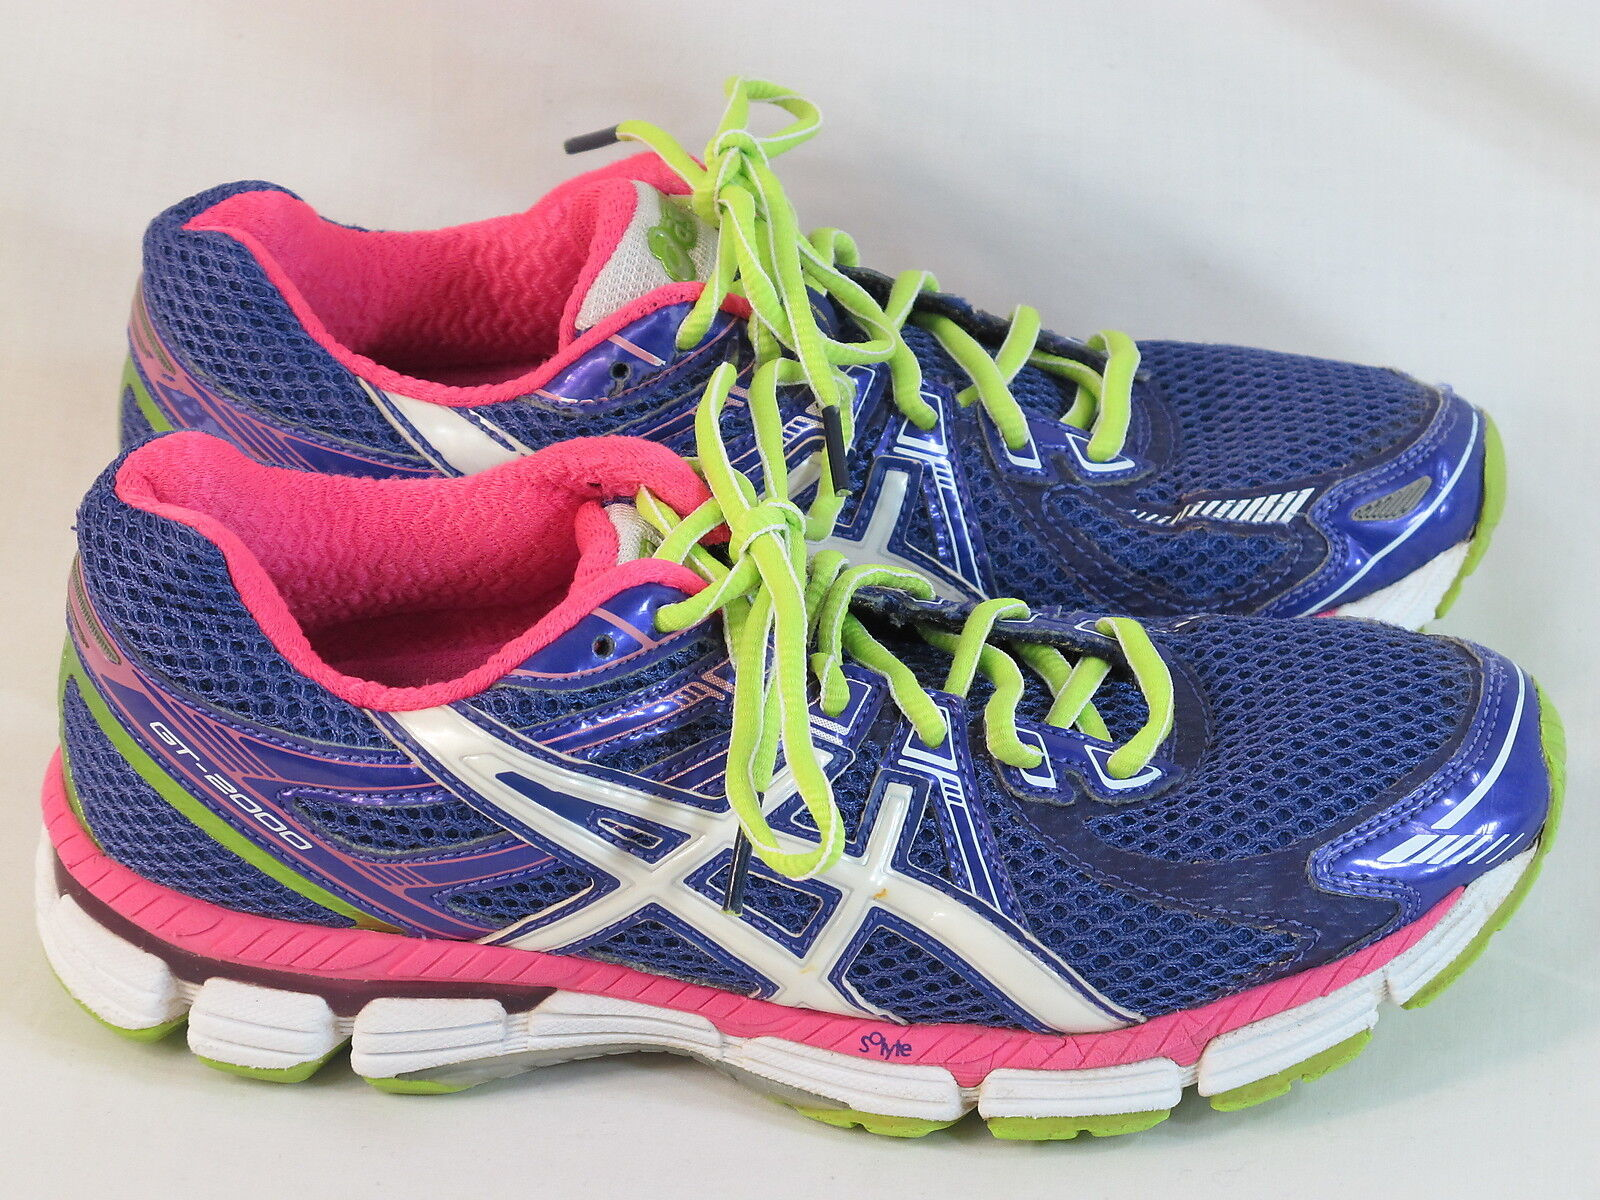 ASICS GT 2000 Running Shoes Women's Comfortable The latest discount shoes for men and women